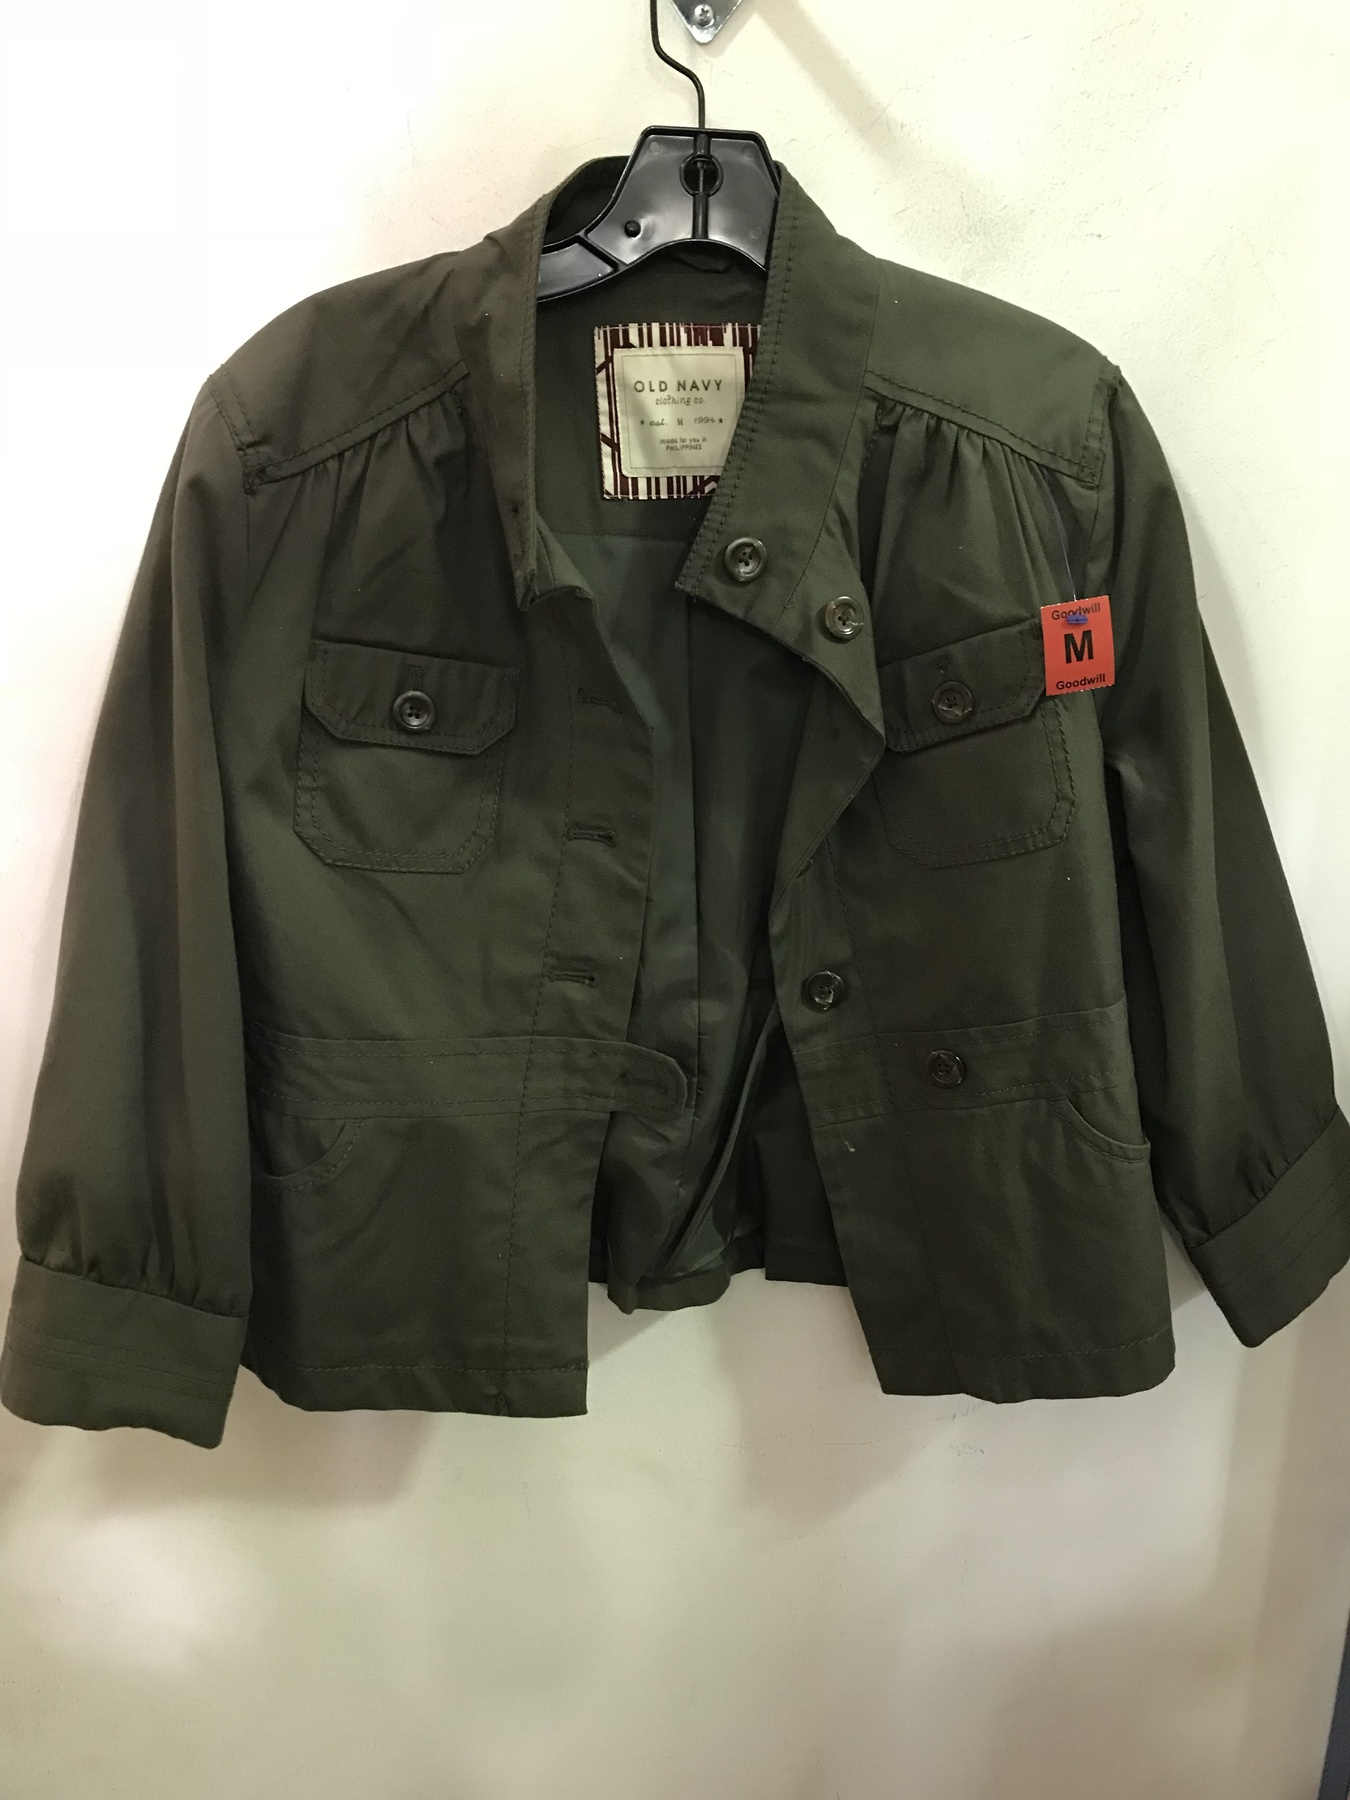 green utility jacket found by Old Navy found at Columbia Pike Goodwill